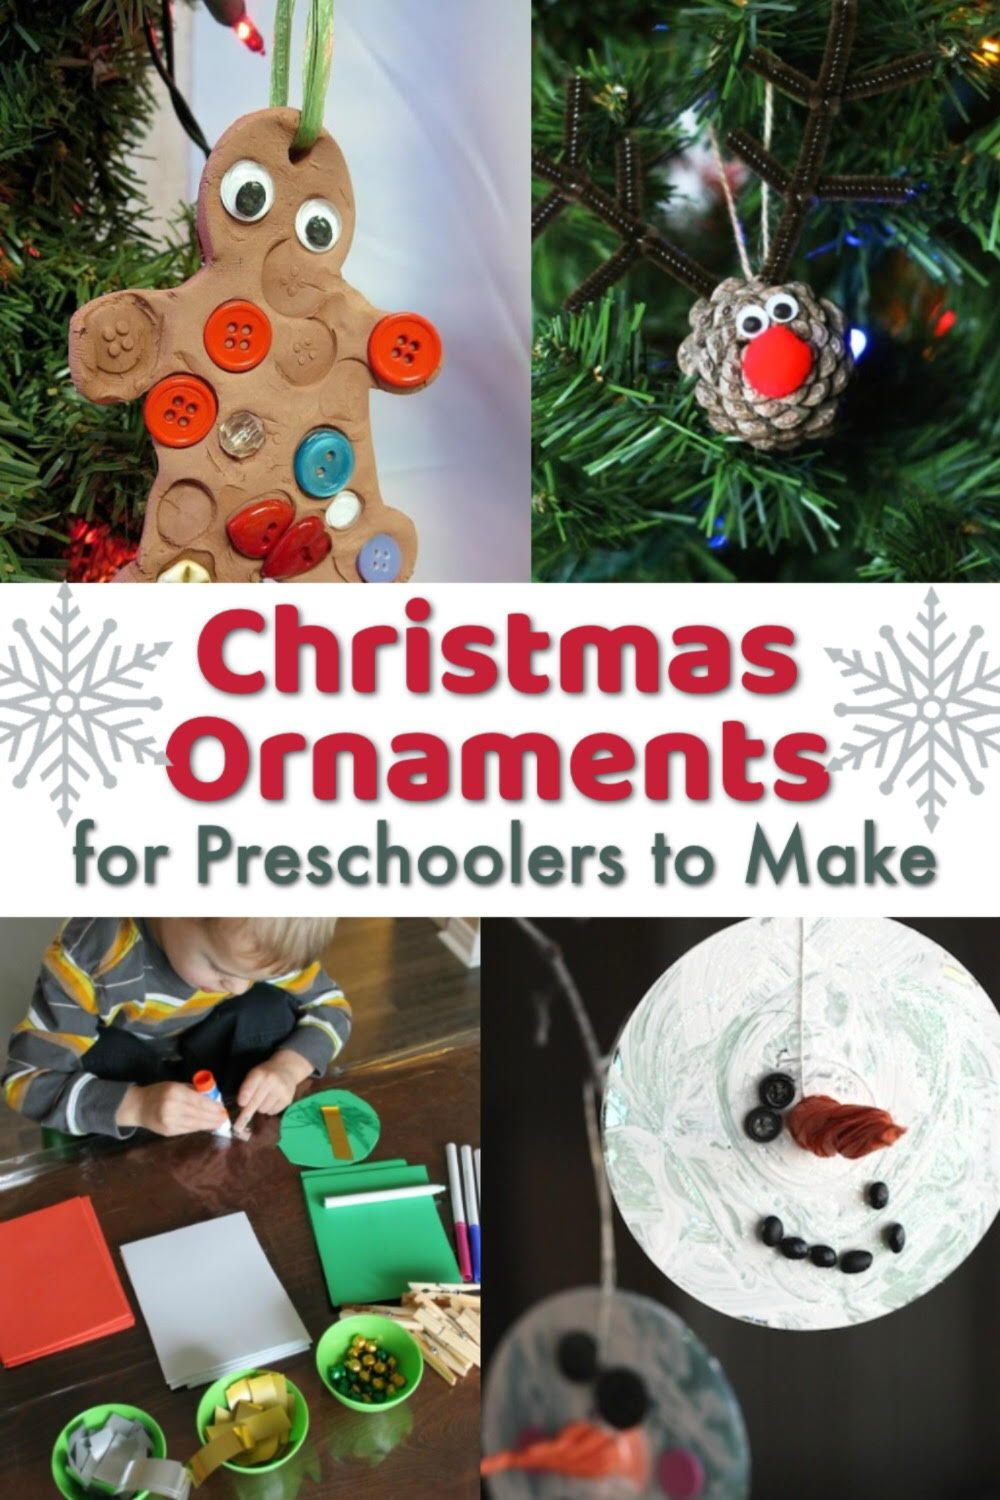 Nothing better than homemade ornaments hanging on your Christmas tree! You'll be sure to treasure these child-made treasures for years to come. #howweelearn #preschool #christmasforkids #christmasornaments